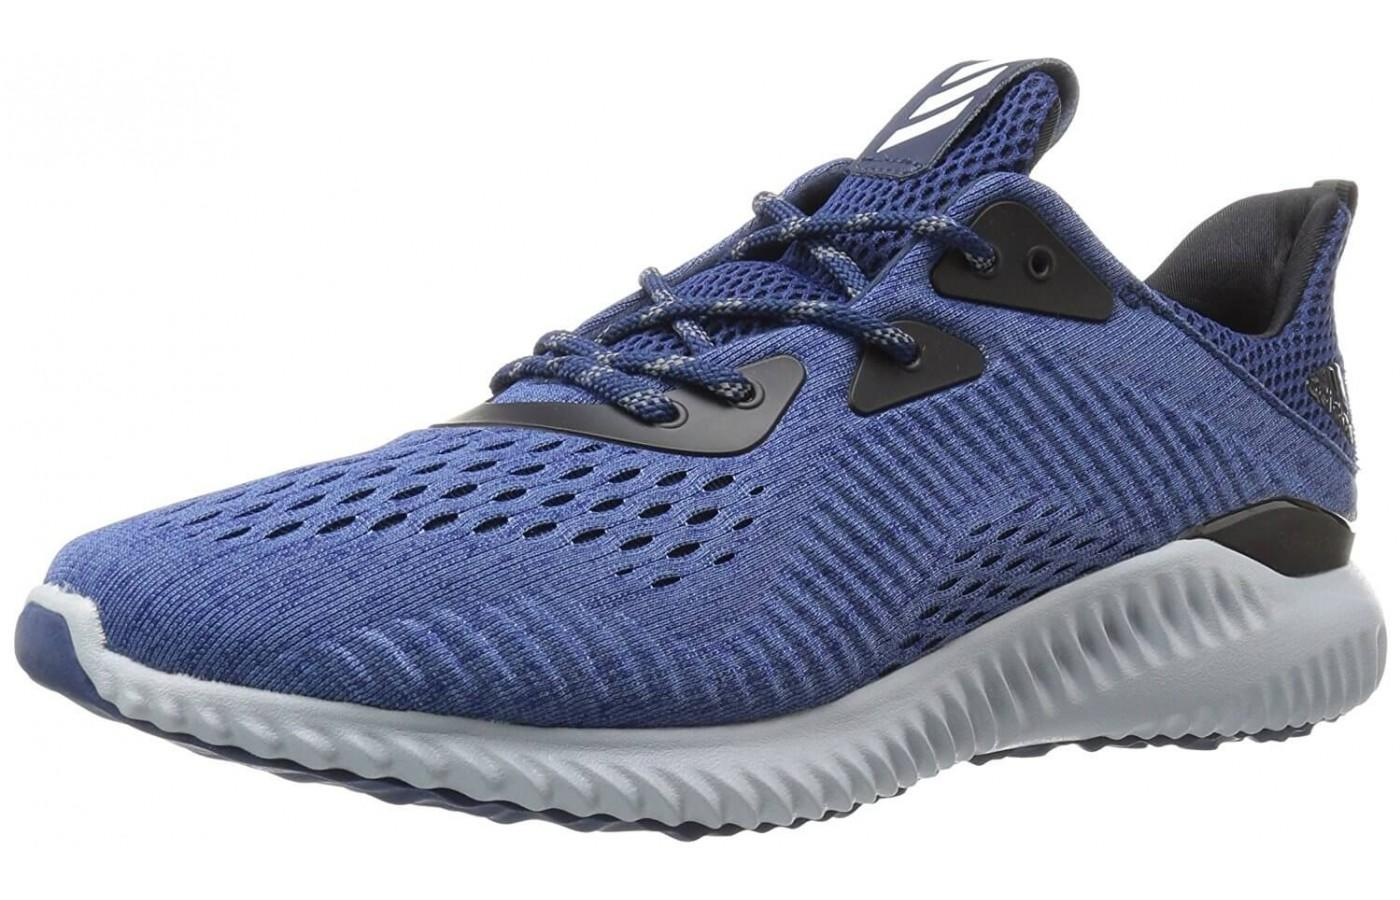 c26b2b38b The Adidas Alphabounce EM features Bounce cushioning ...